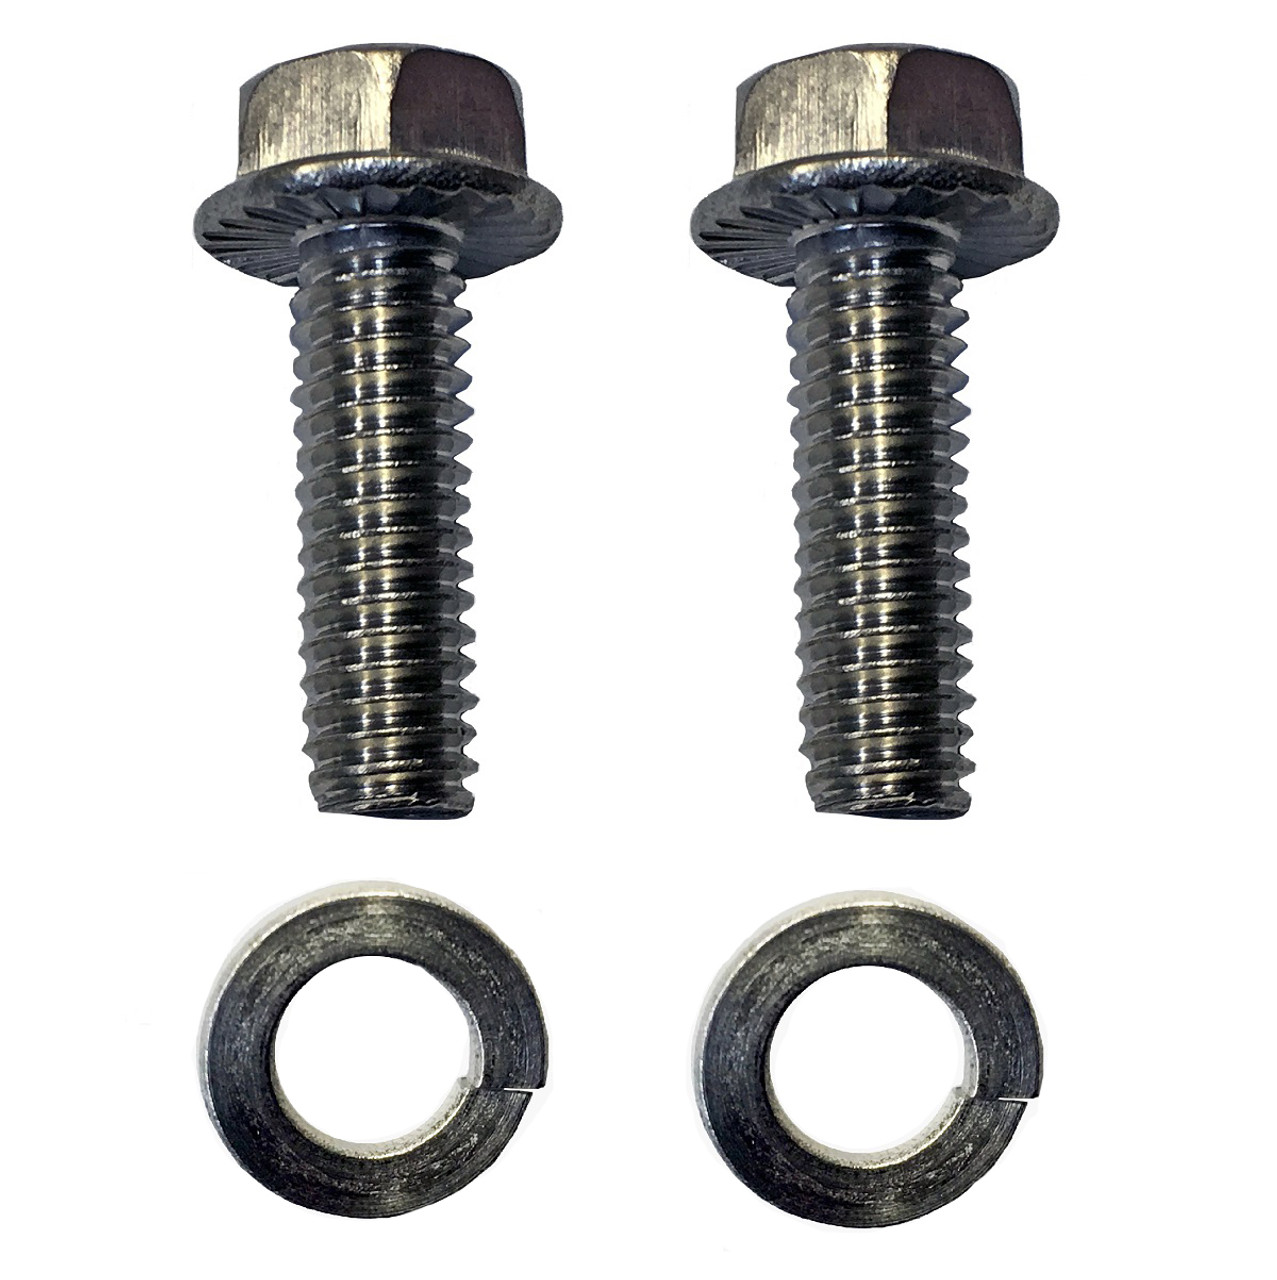 THERMOSTAT HOUSING BOLTS & WASHERS IN STAINLESS STEEL